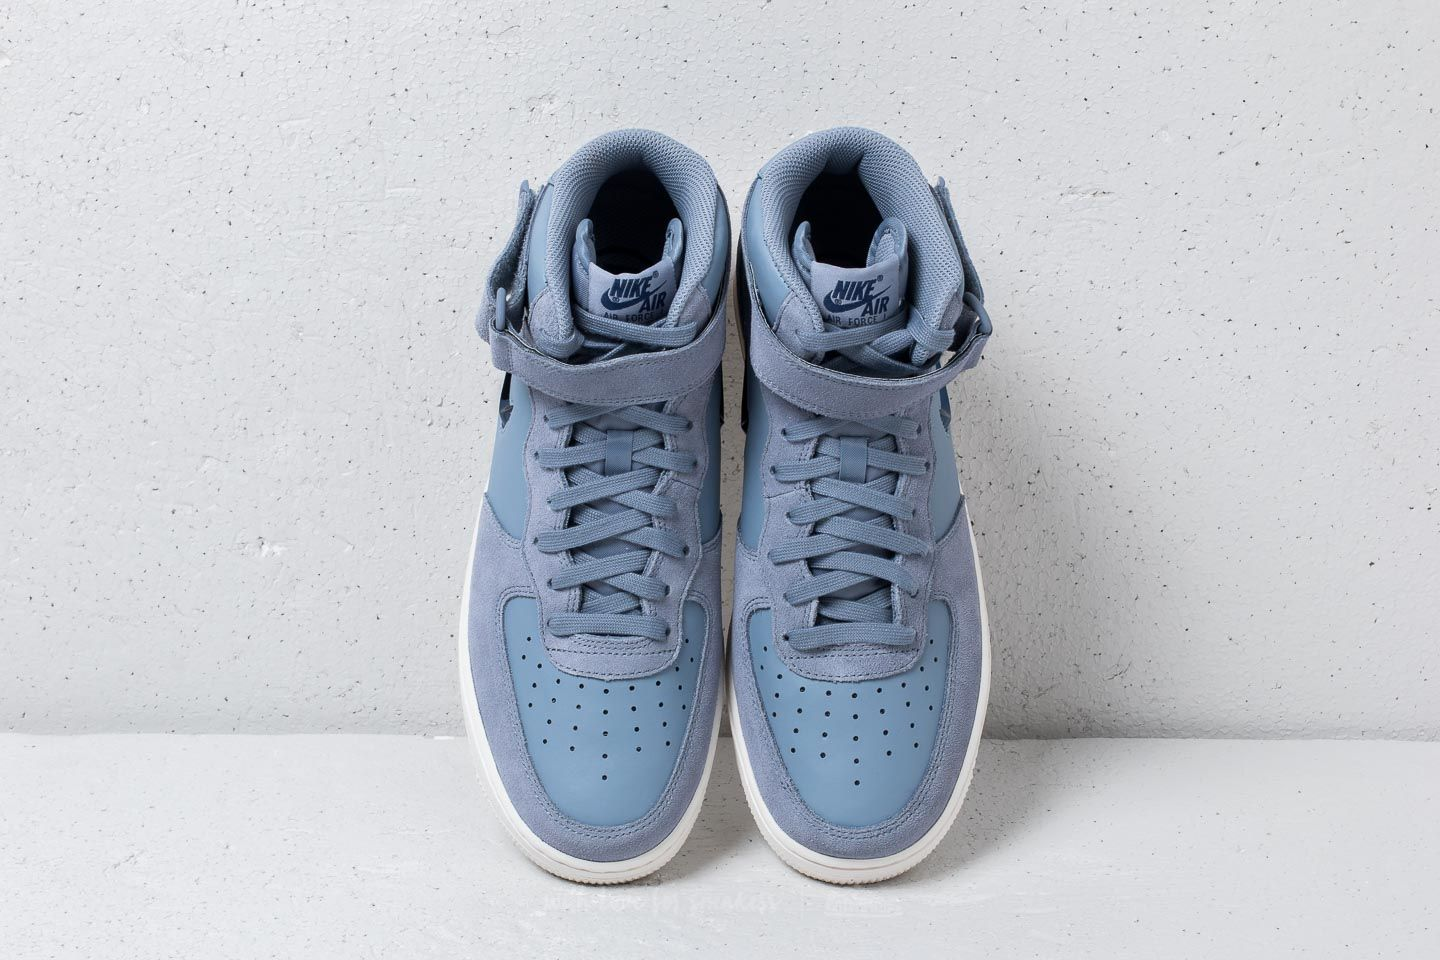 7f5d7142cf5 ... new arrivals nike air force 1 mid 07 lv8 ashen slate blue void at a  great